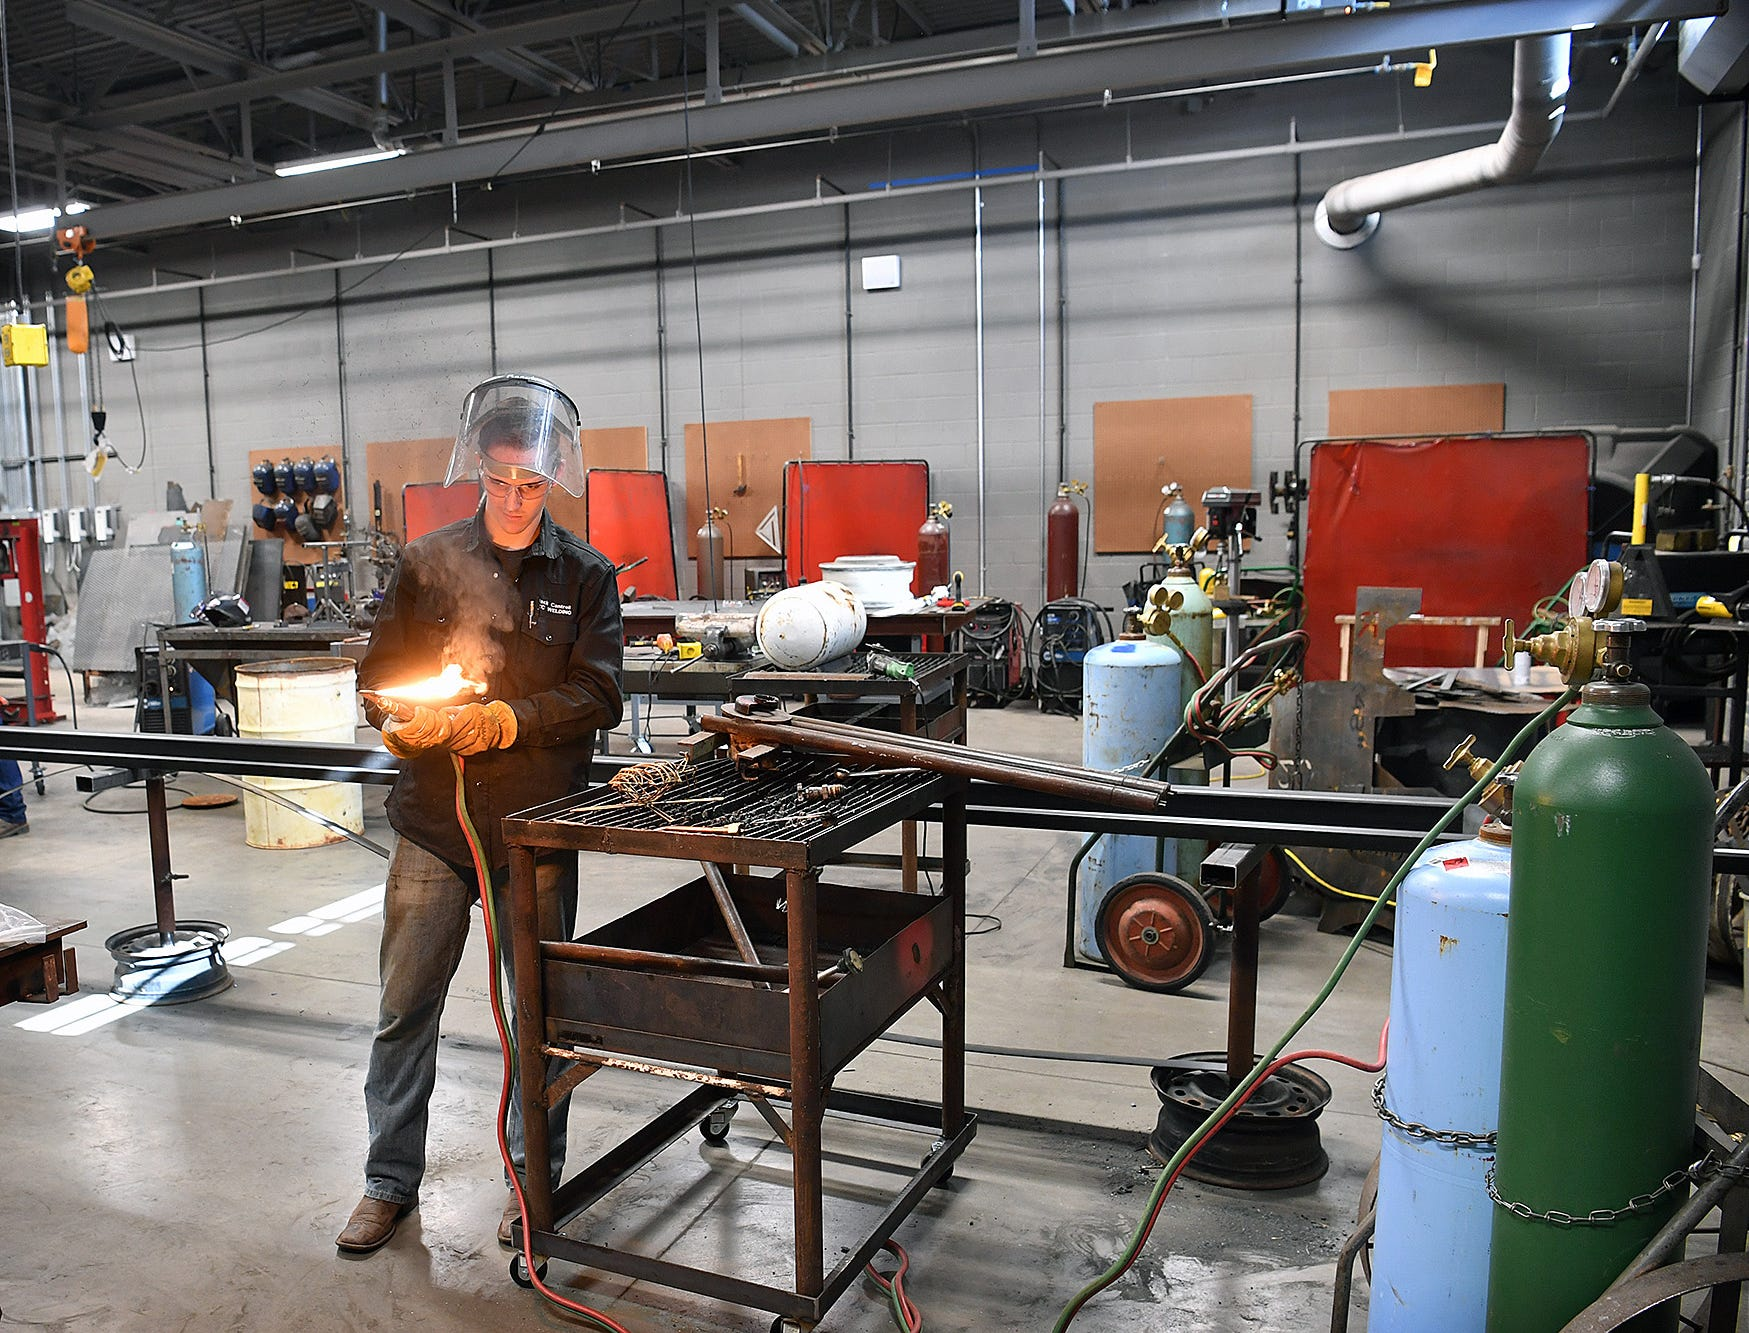 Jack Cantrell fires up a torch in the Welding Technology class at the Career Education Center.